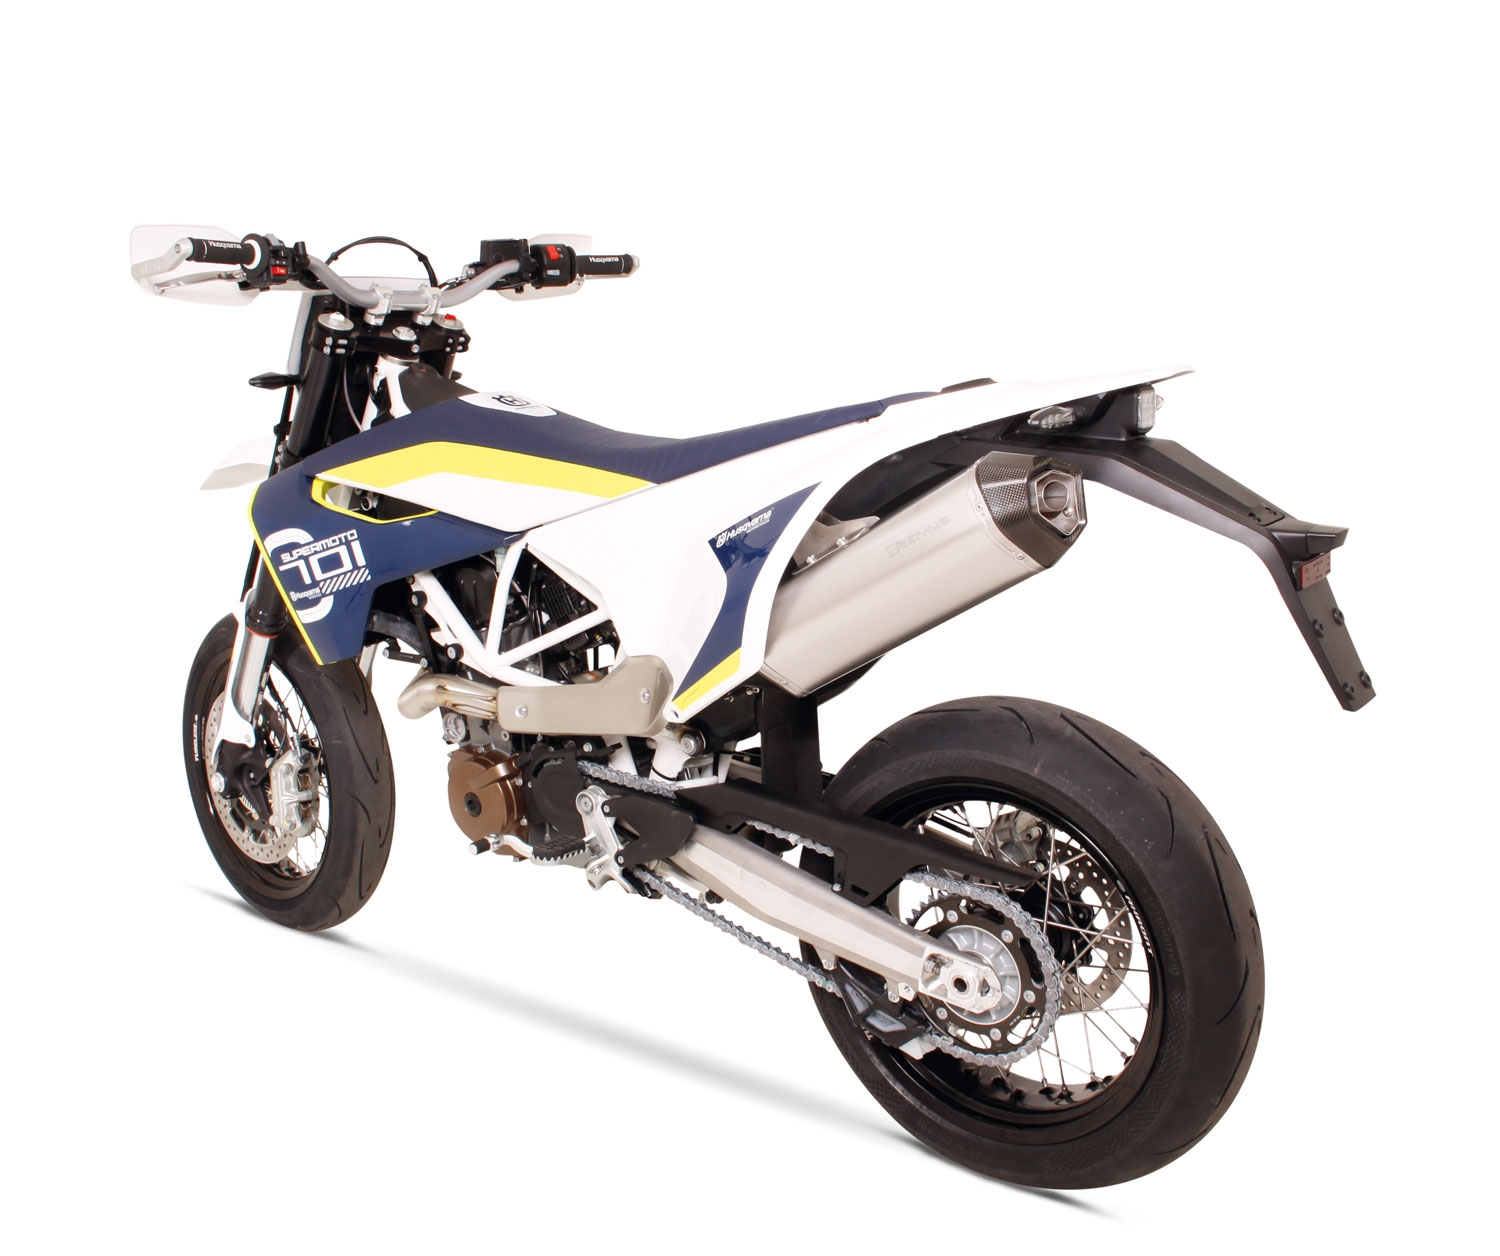 remus news bike info 06 16 husqvarna 701 supermoto. Black Bedroom Furniture Sets. Home Design Ideas